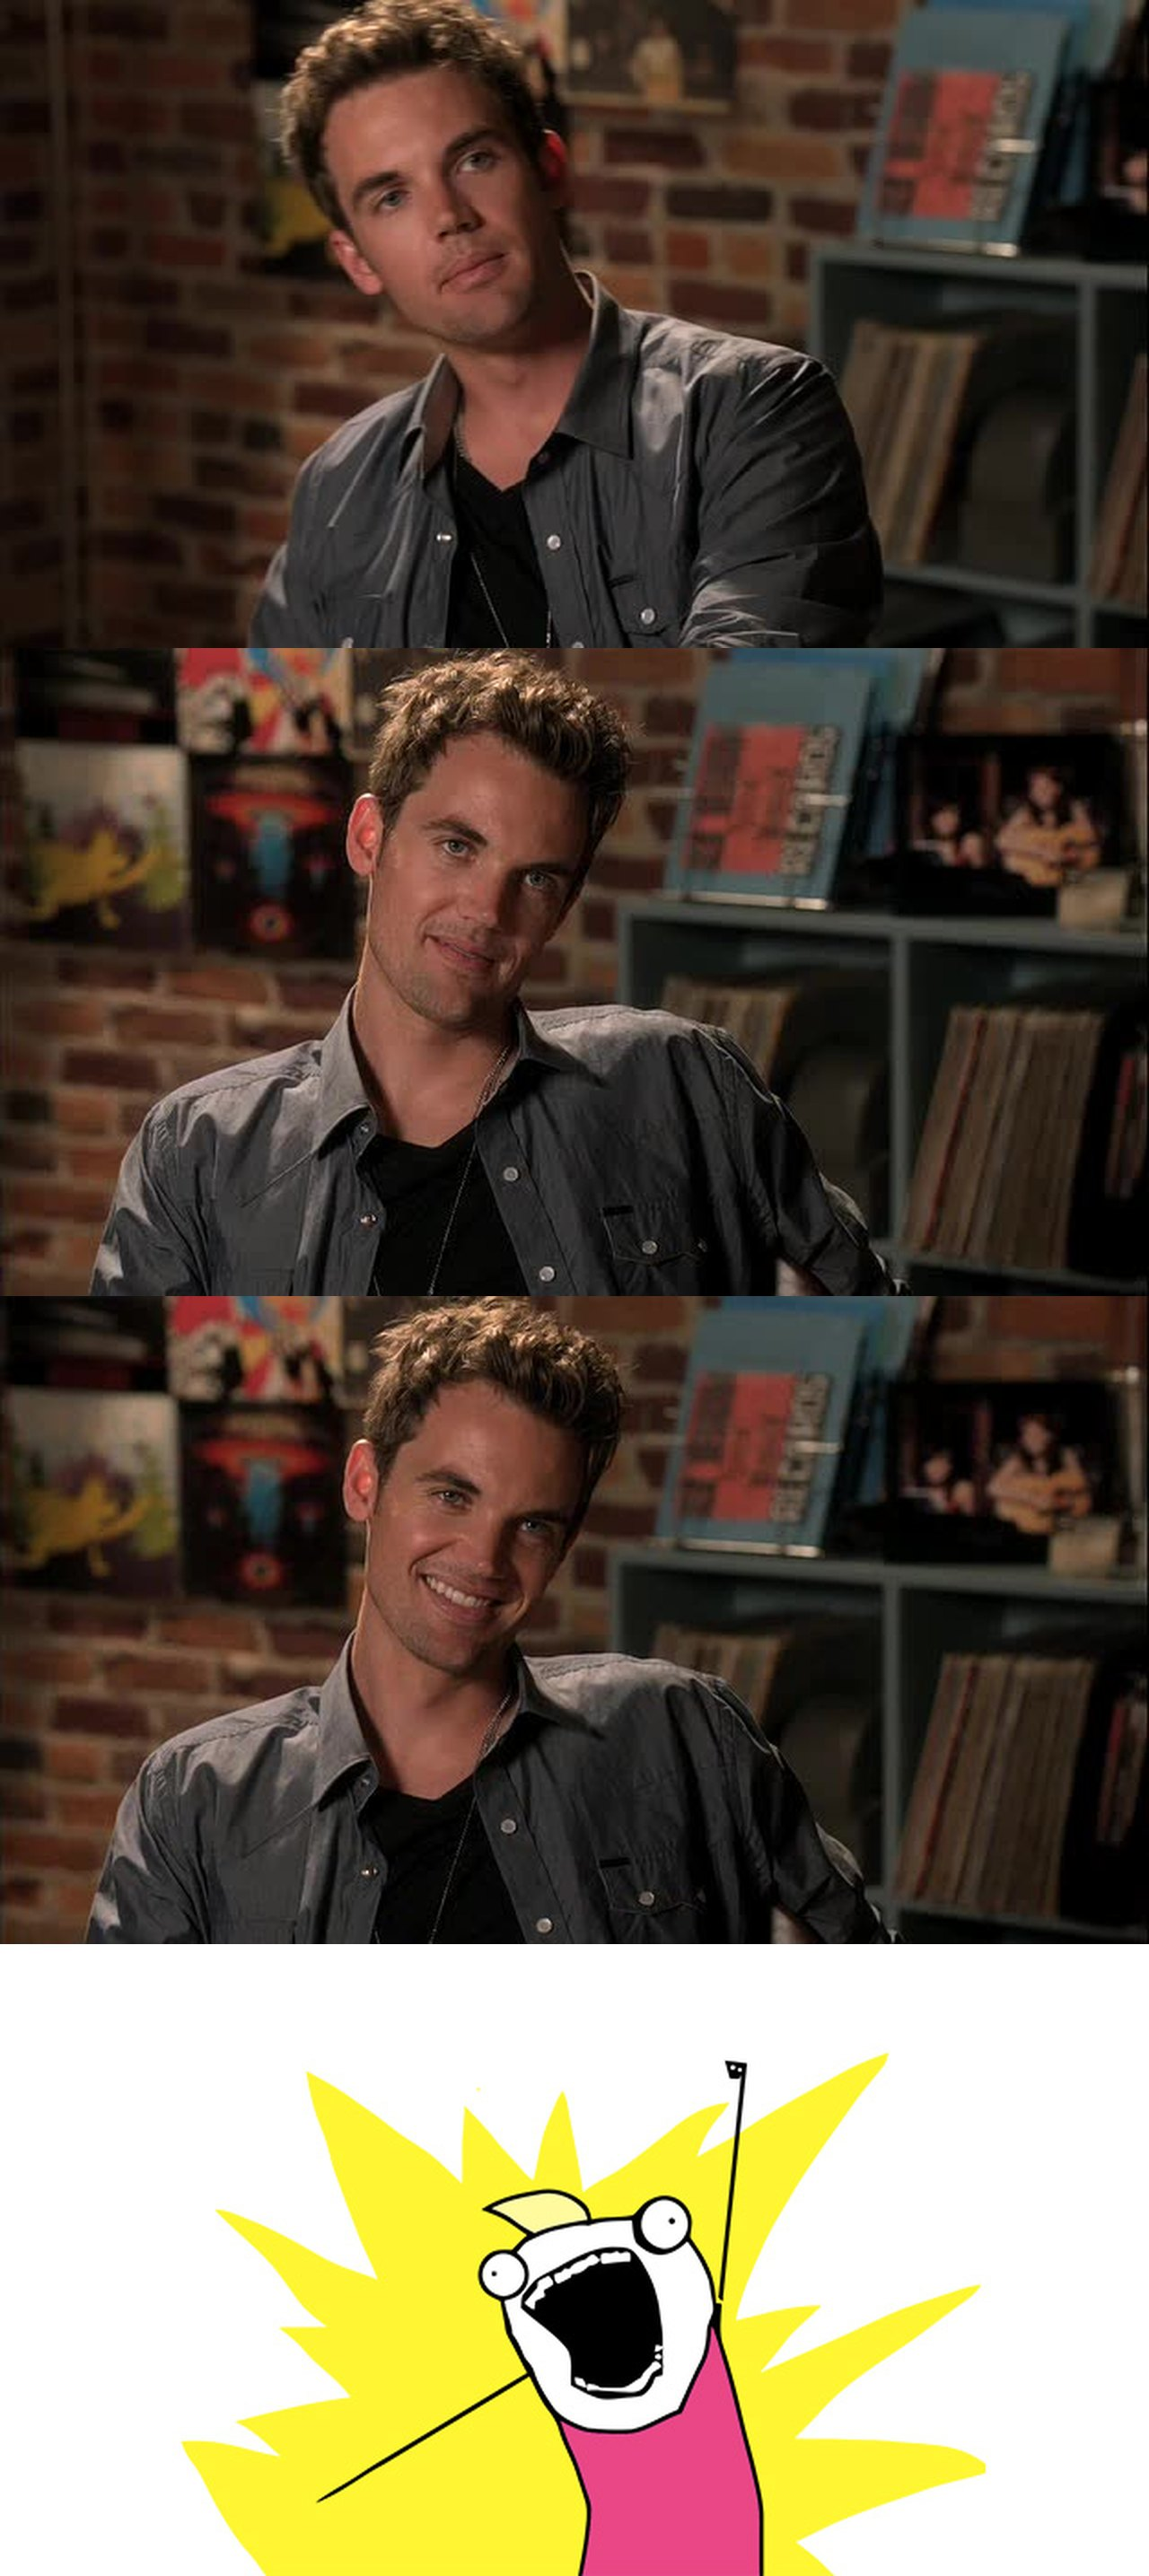 Chris Keller is back and more adorable, funny and cute than ever!!